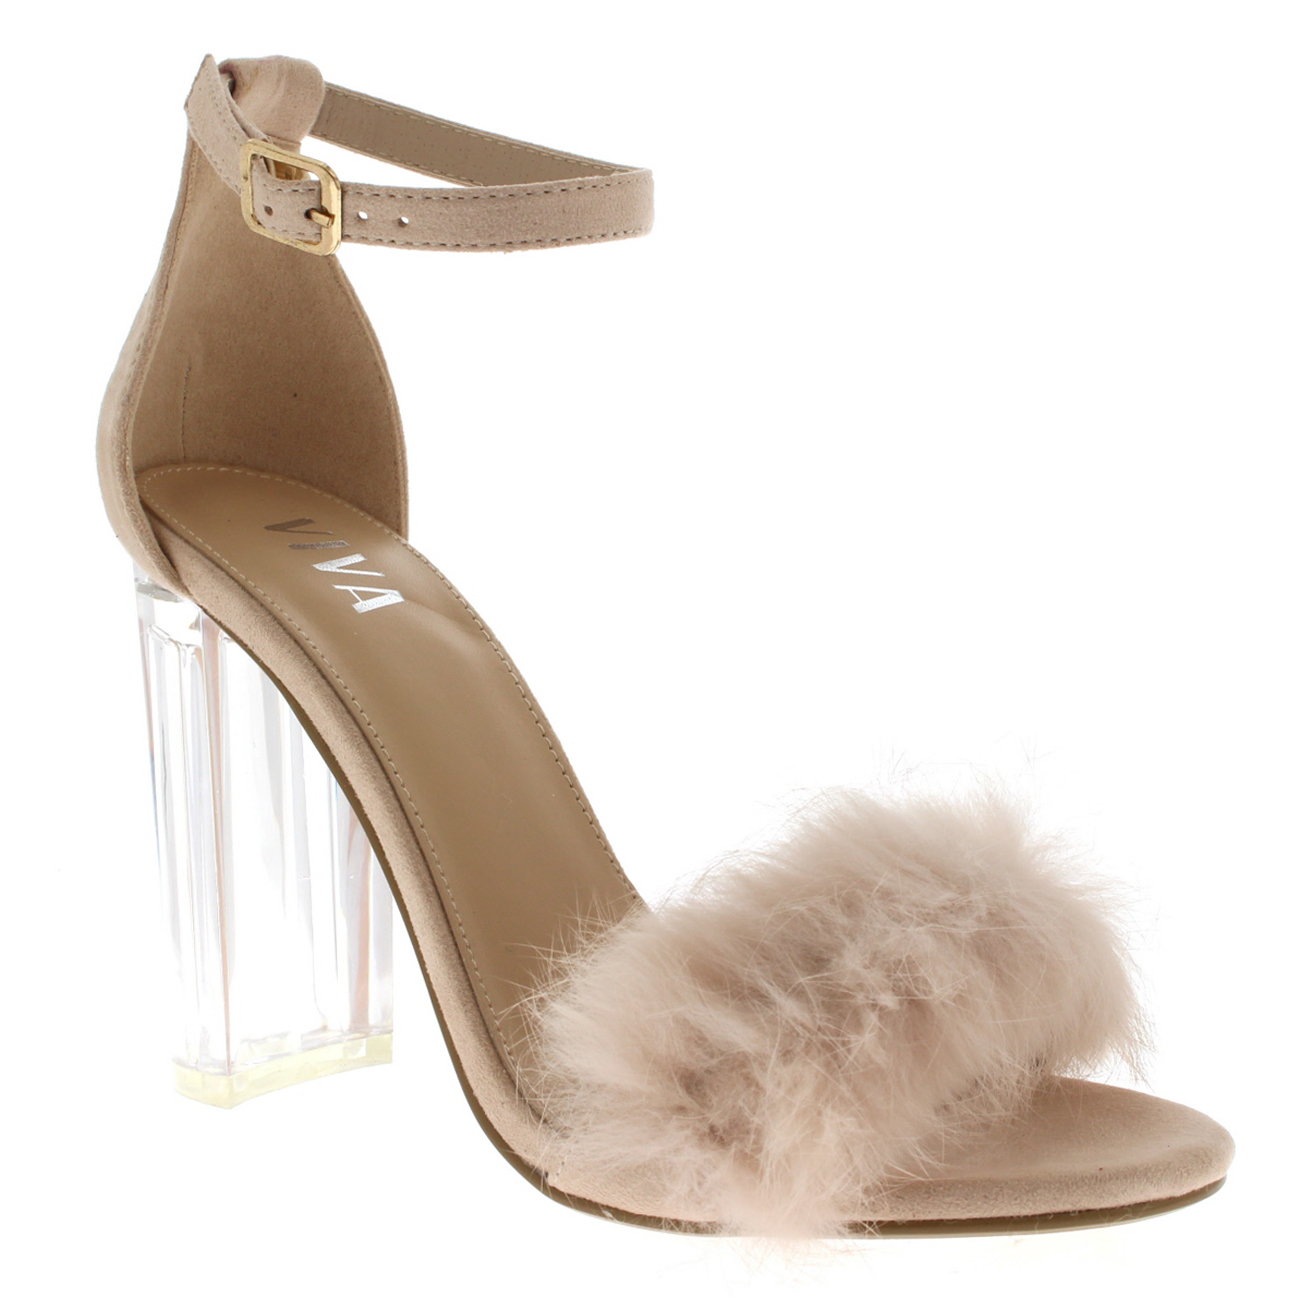 a9f71706174 Details about Womens Cut Out Fluffy Party Fashion Block Heel Pumps Glass  High Heels US 5-10